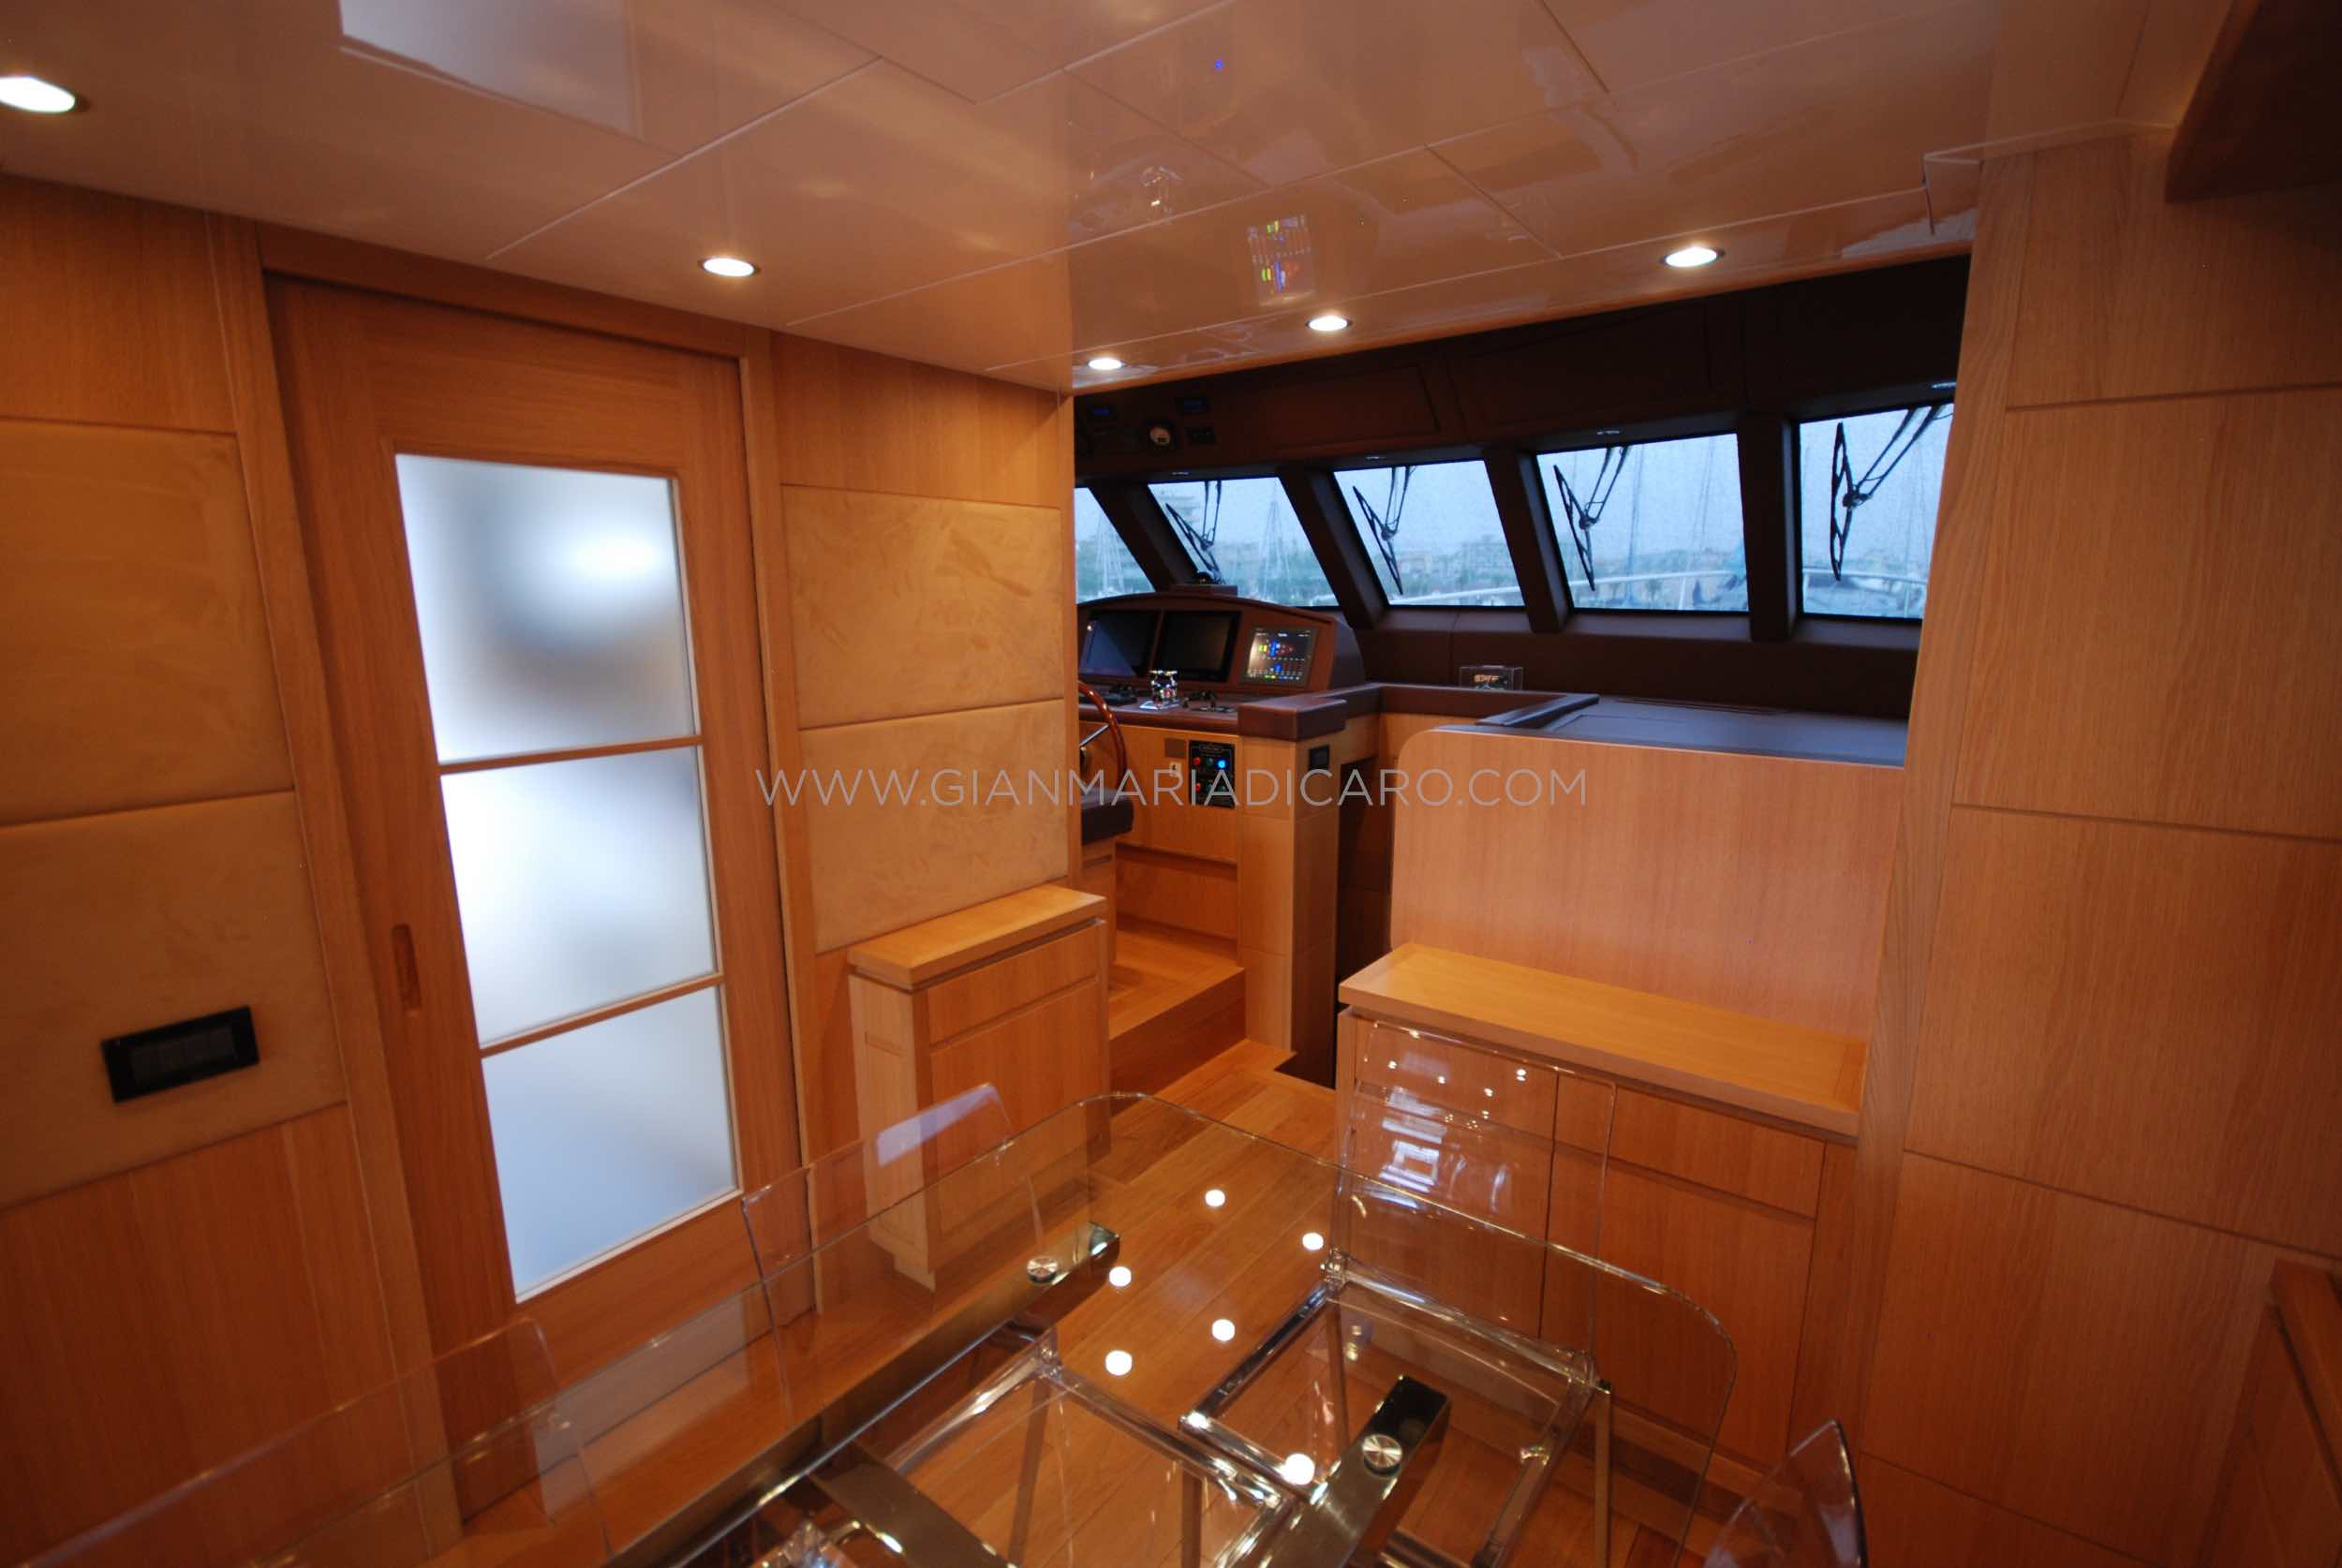 emys-yacht-22-unica-for-sale-130.jpg